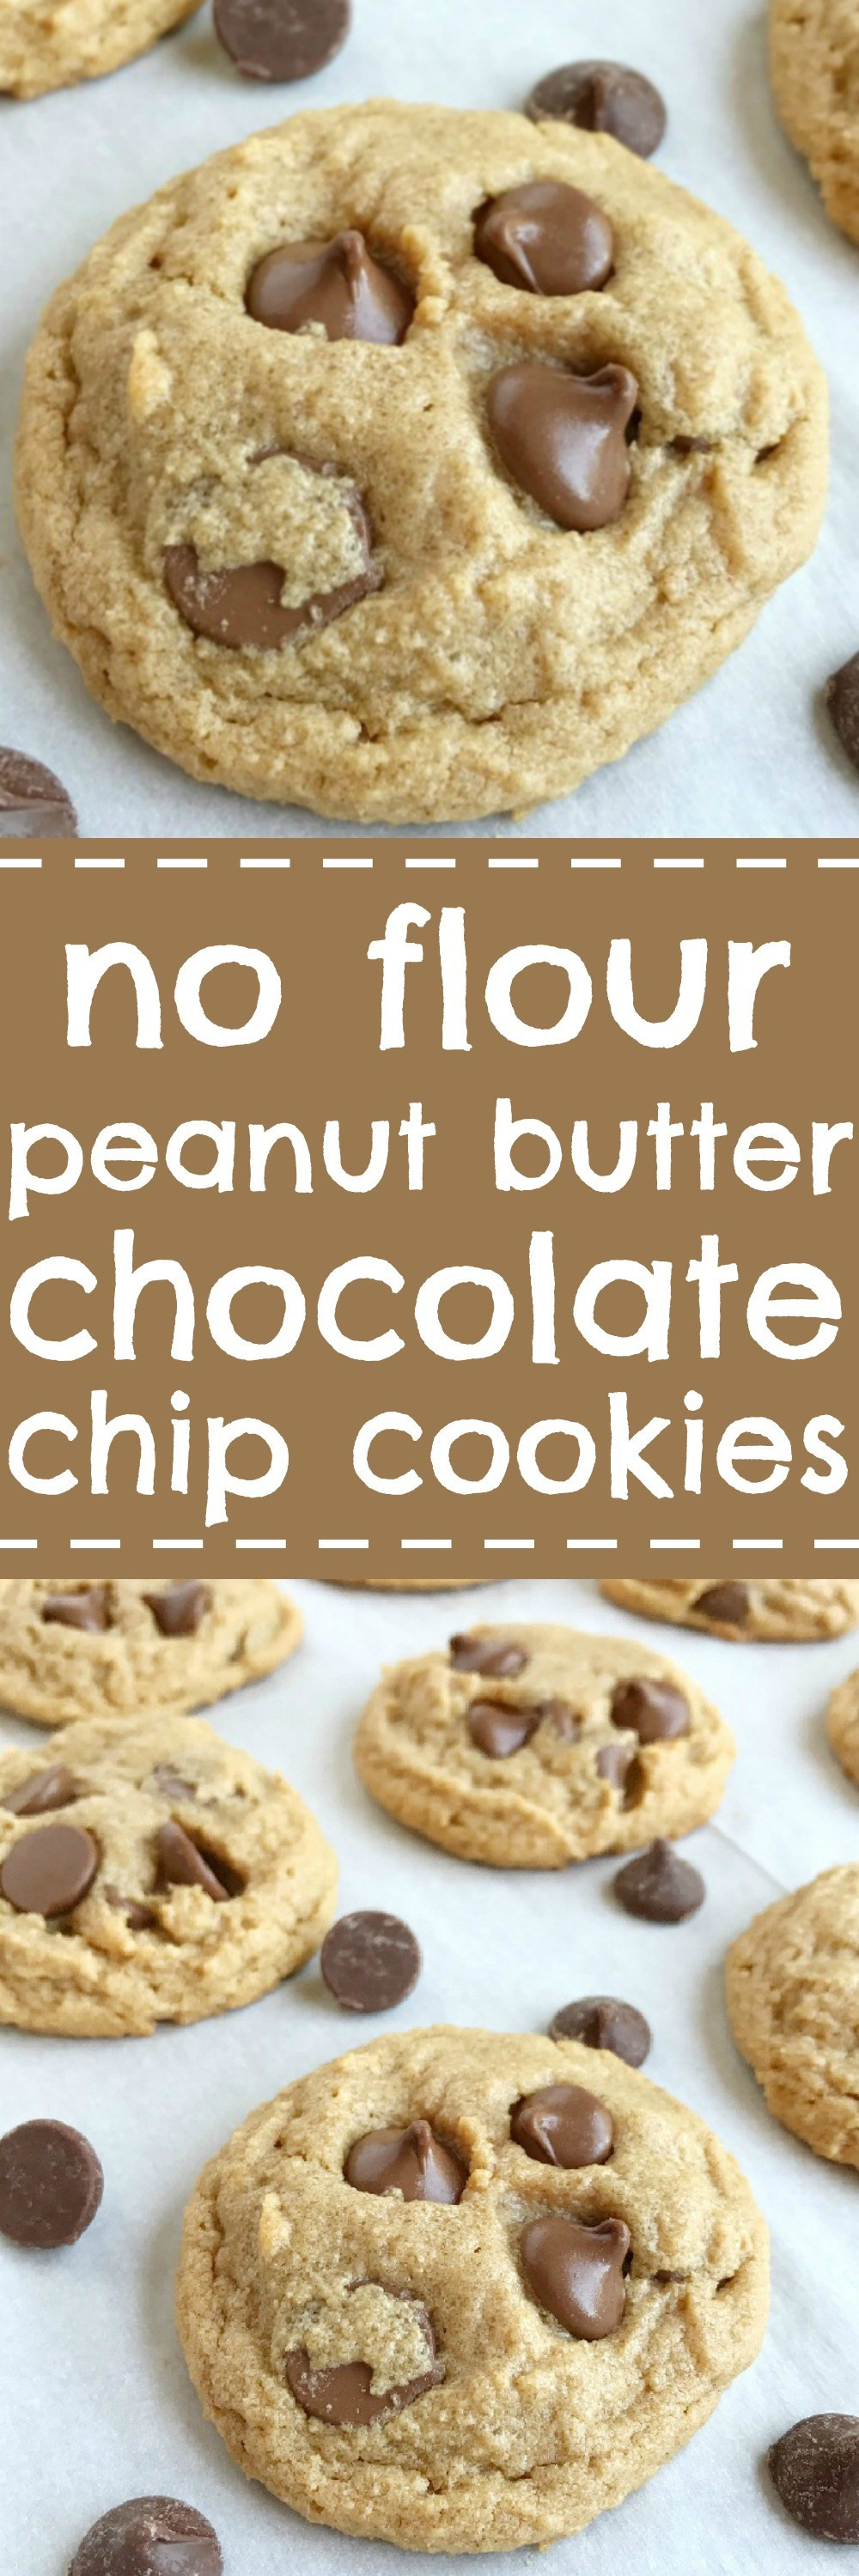 Peanut Butter Cookies No Flour  No Flour Peanut Butter Chocolate Chip Cookies To her